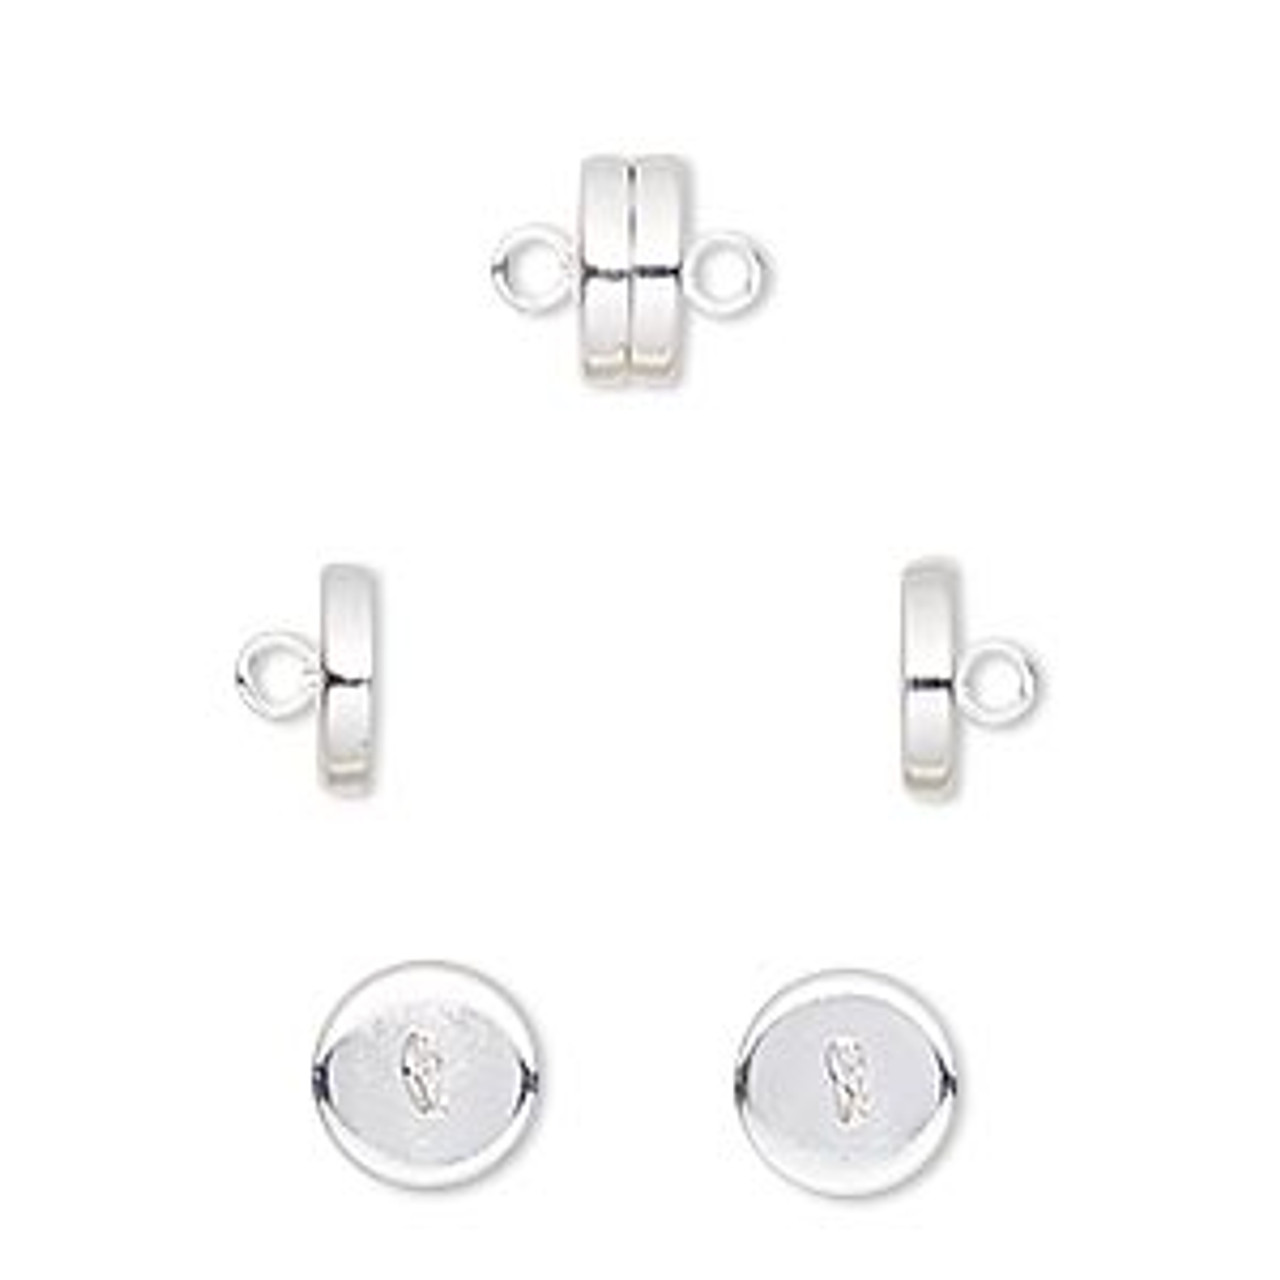 8x4mm Silver Plated Magnetic Clasp